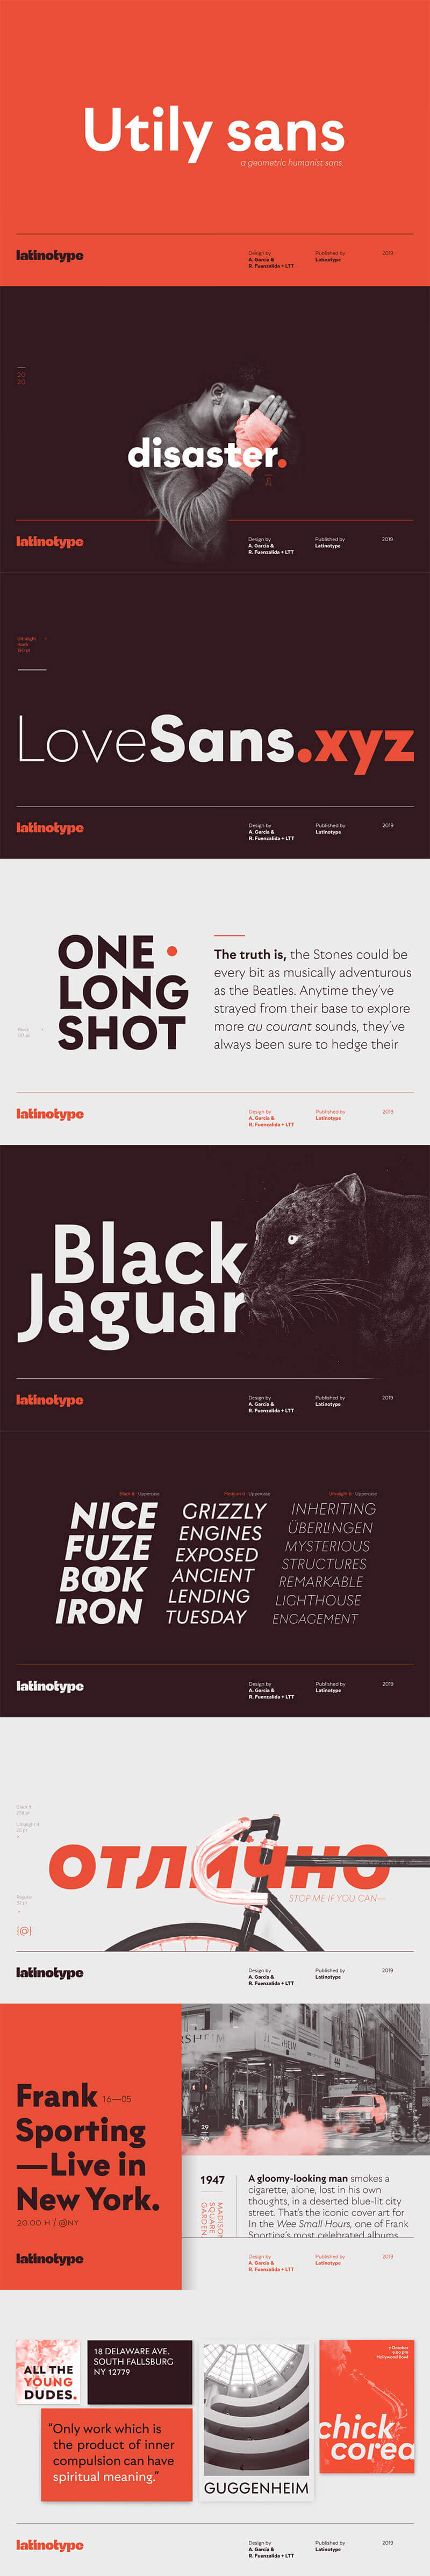 definitive-designers-typography-selection-a-1